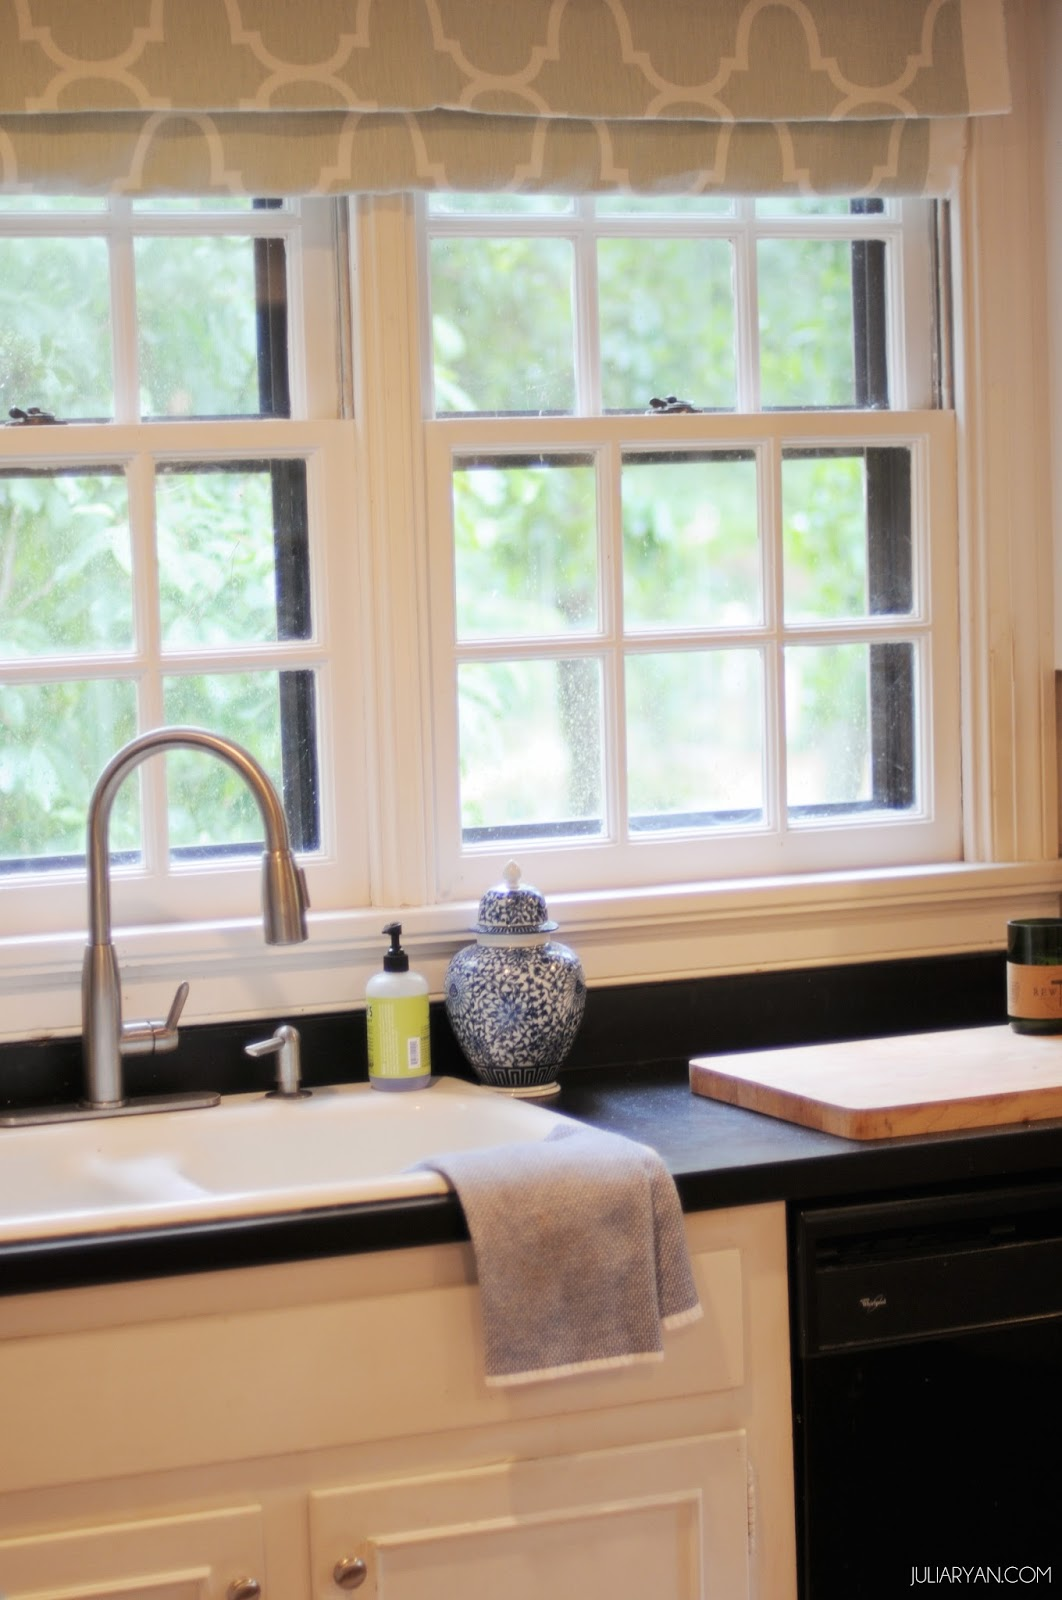 New house progress kitchen window treatments julia ryan for Fabric shades for kitchen windows